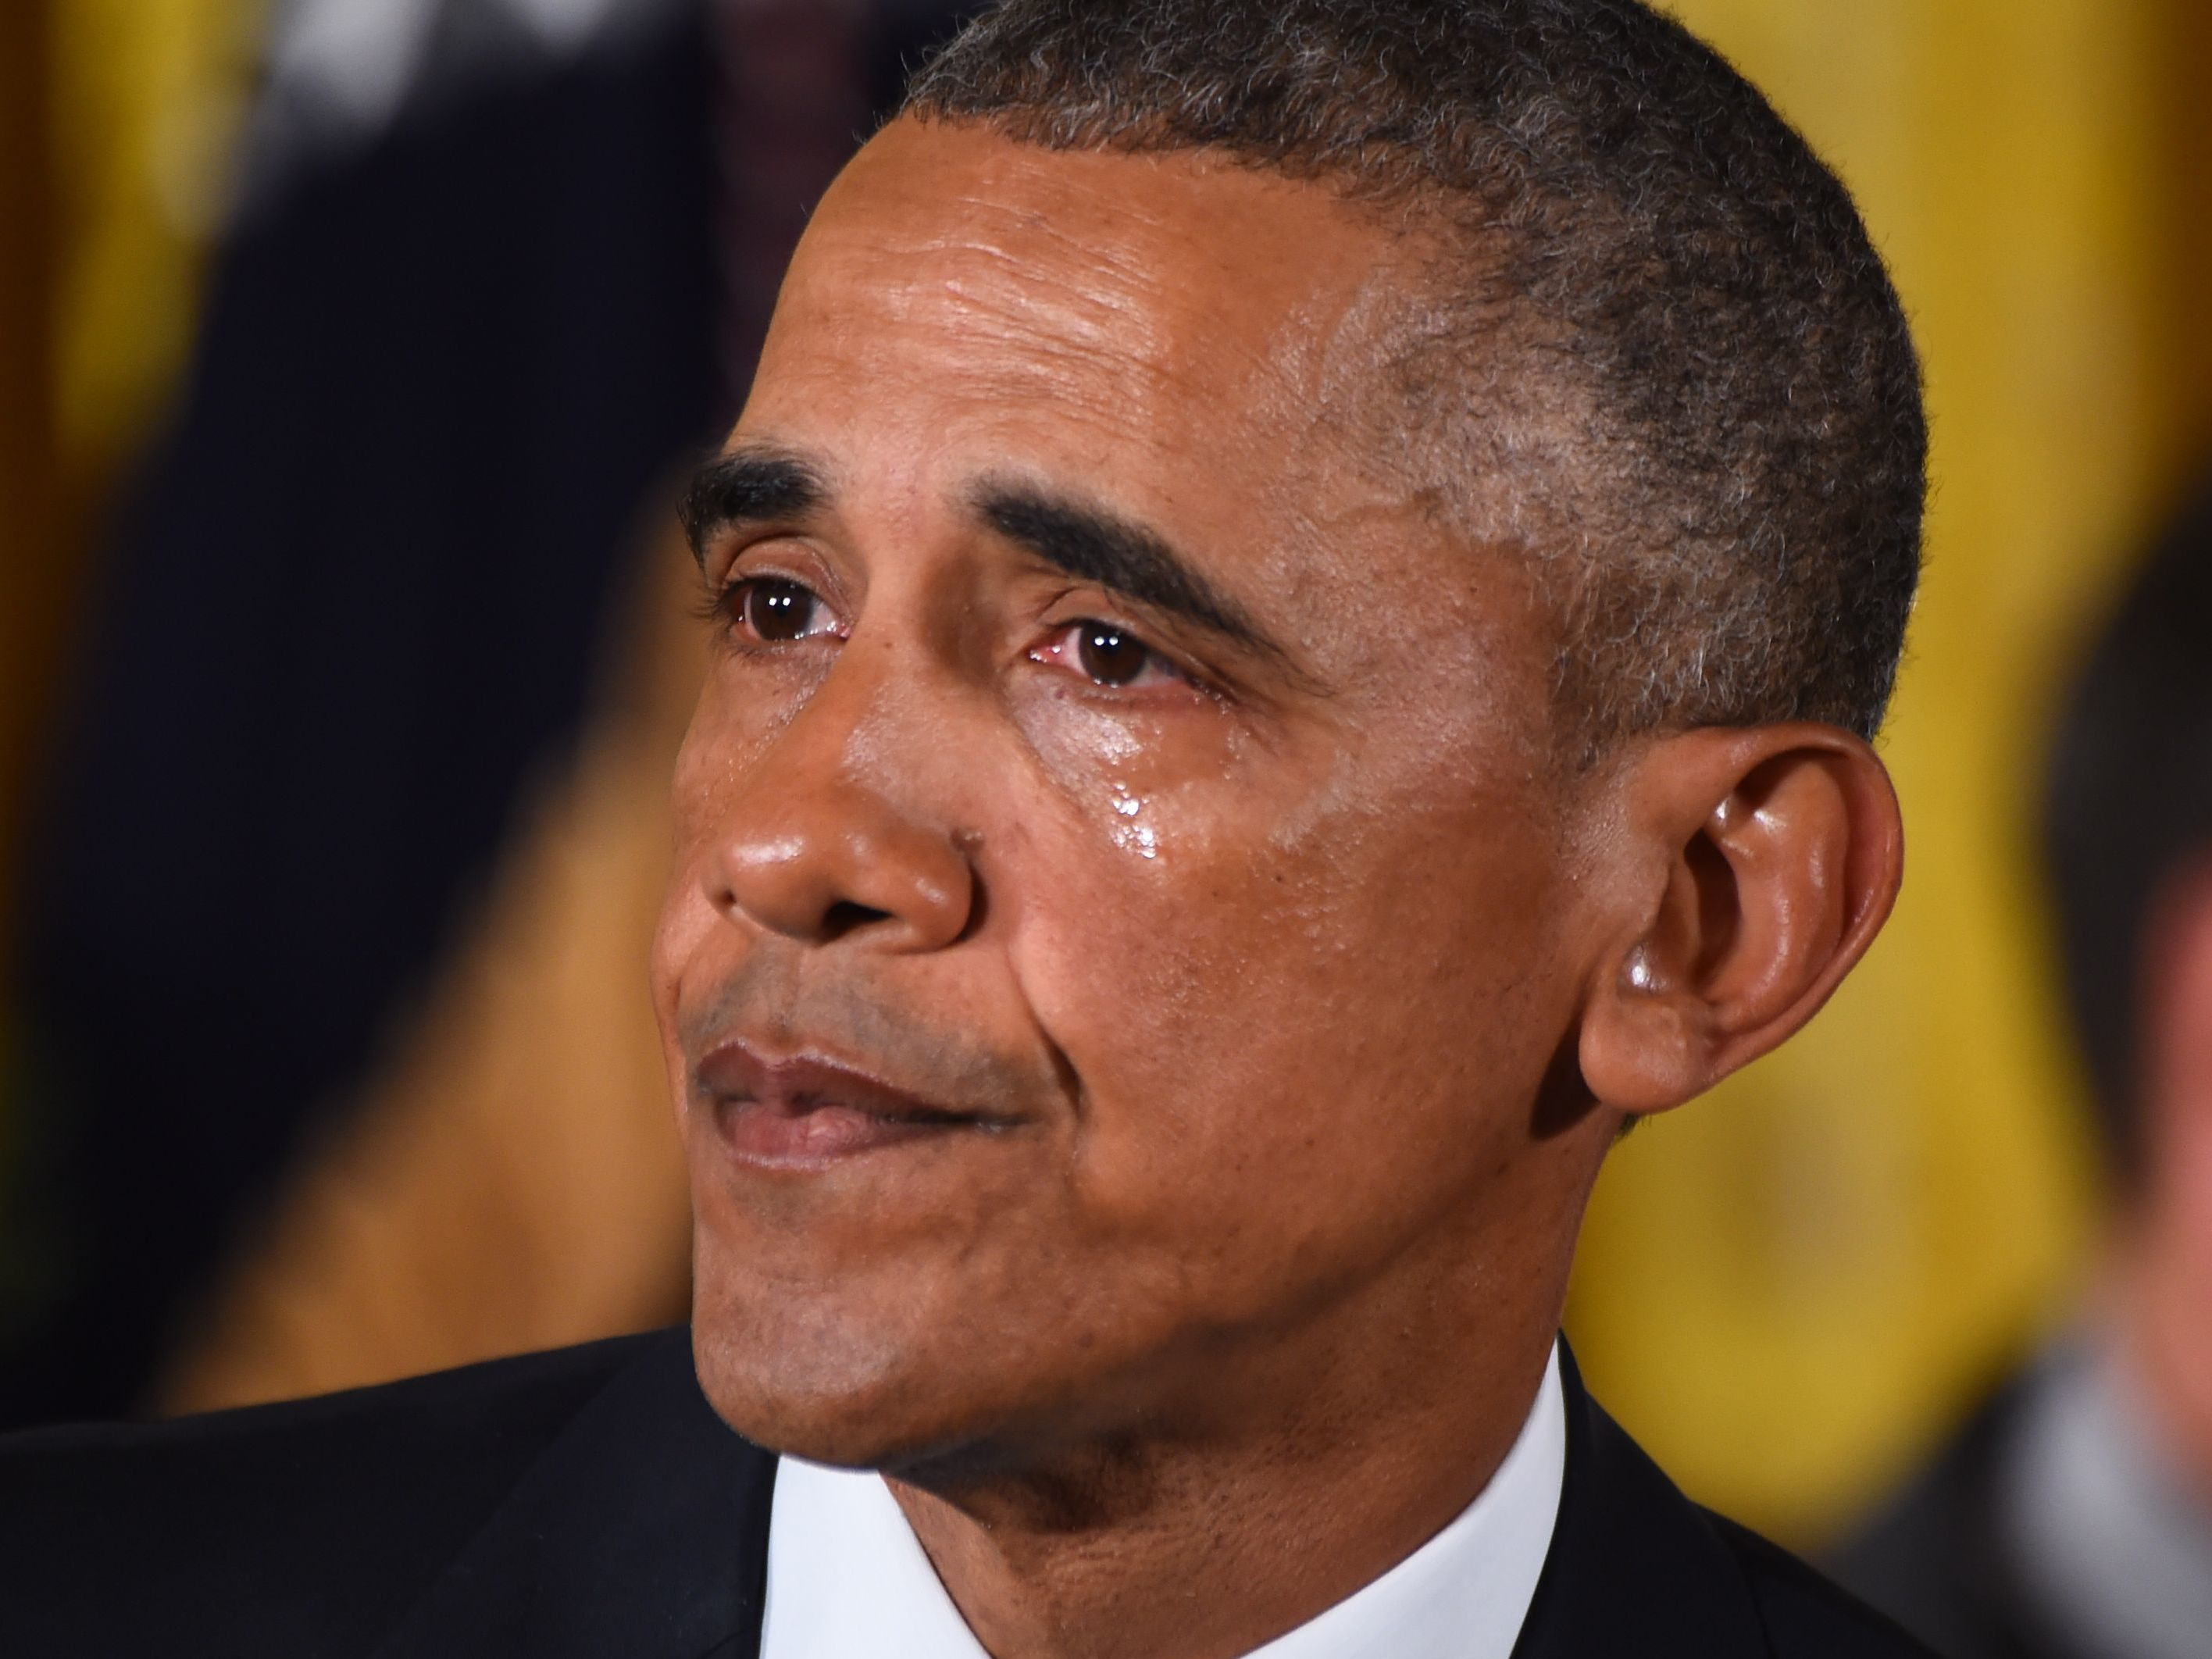 President Barack Obama gets emotional as he delivers a statement on executive actions to reduce gun violence on January 5, 2016 at the White House in Washington, DC. (Jim Watson/AFP/Getty Images)